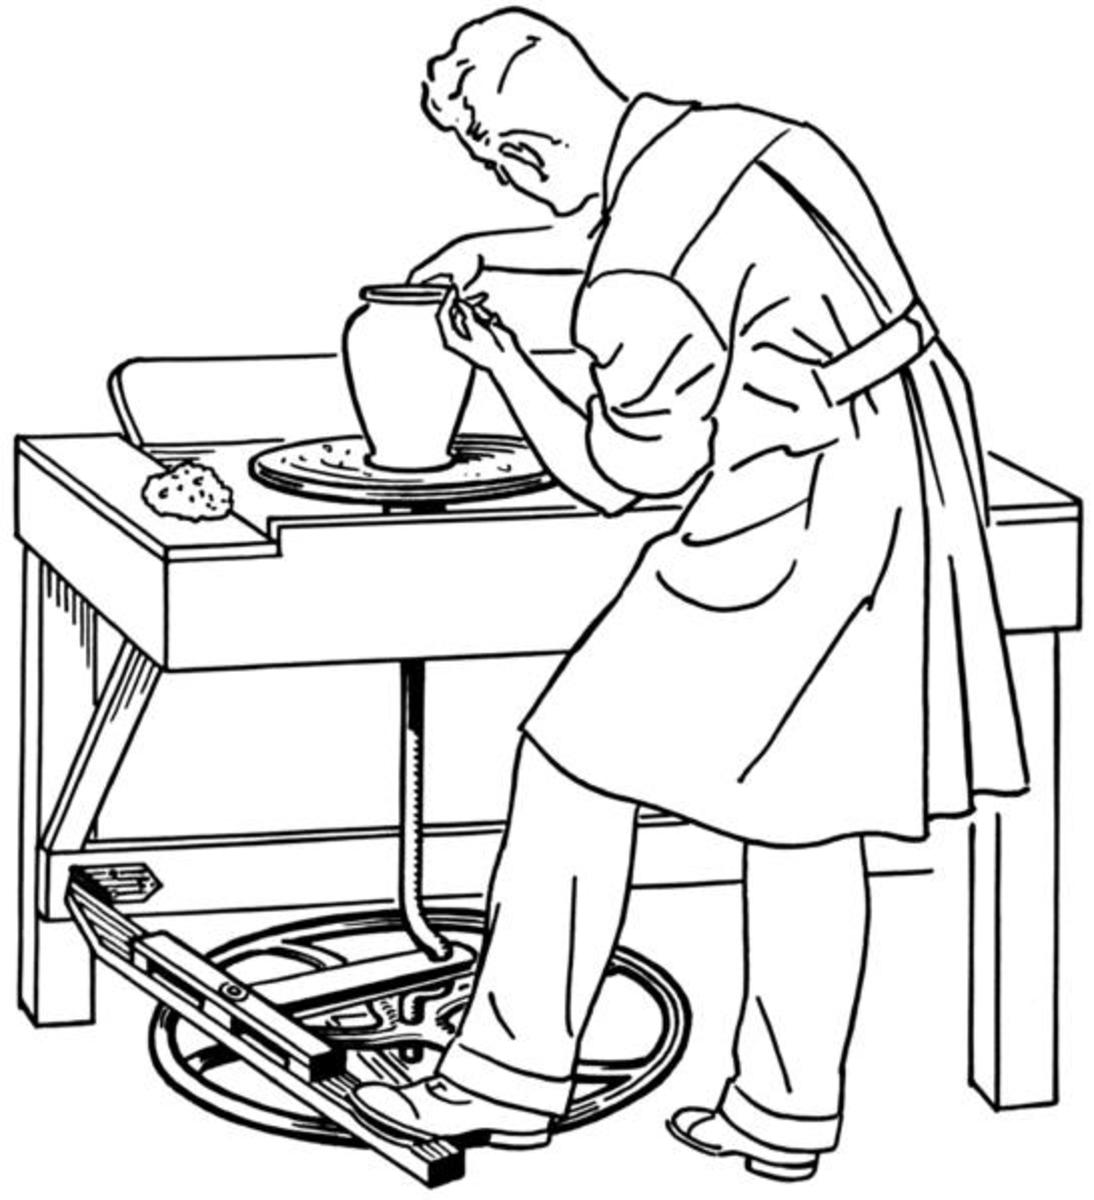 A Treadle Pottery Wheel - a potter wheel-throwing clay pots will not fail to fascinate you . Image Credit: Pearson Scott Foresman, Wikipedia Commons